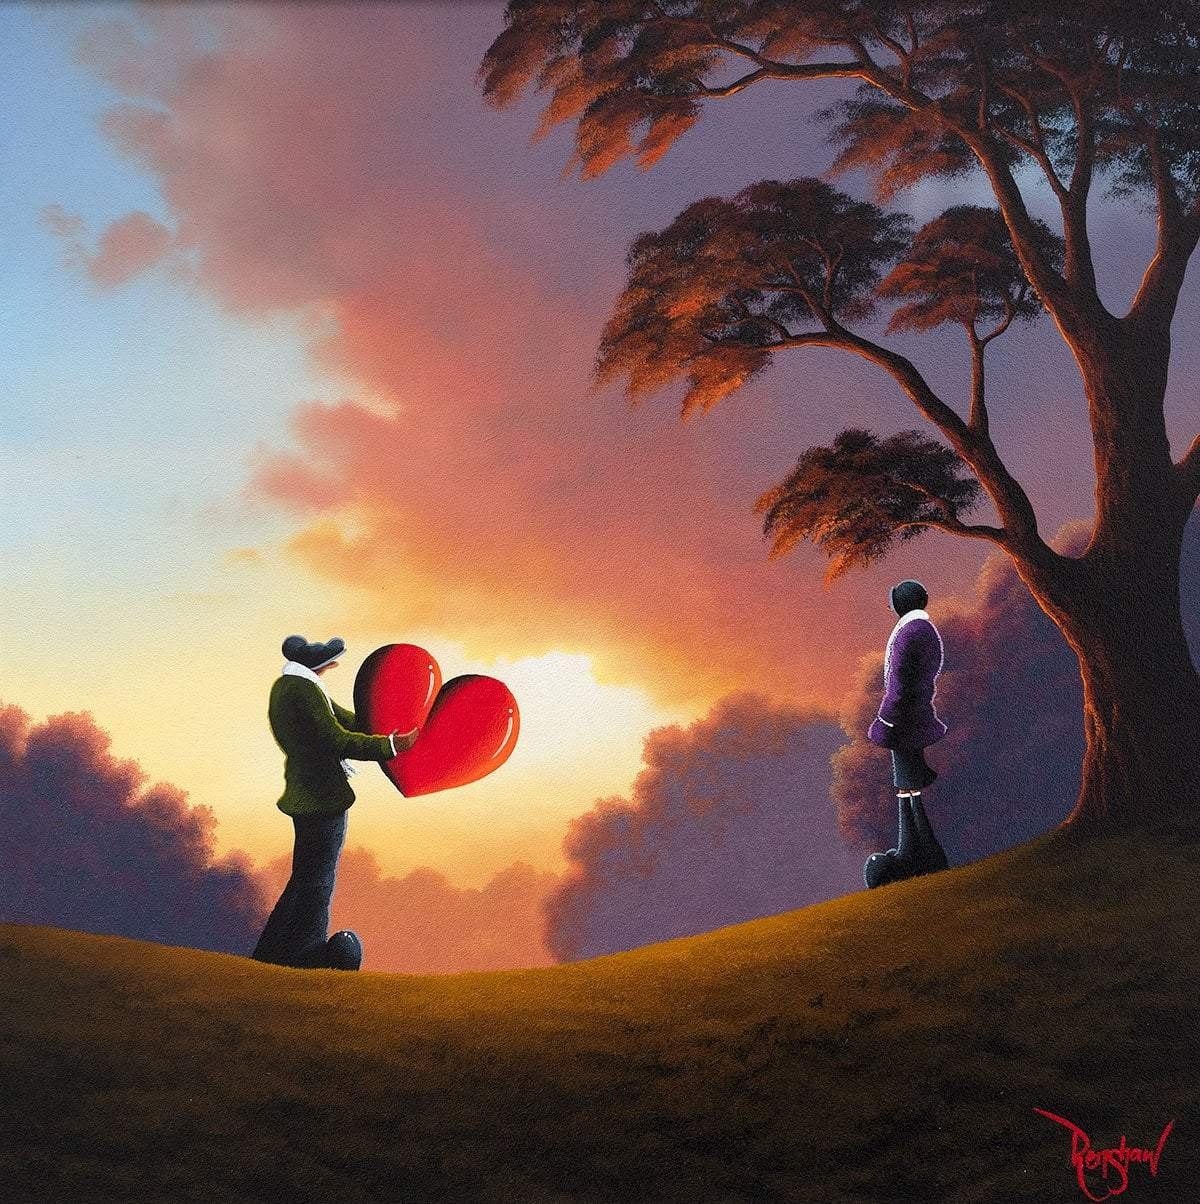 Take My Love - Original David Renshaw Framed